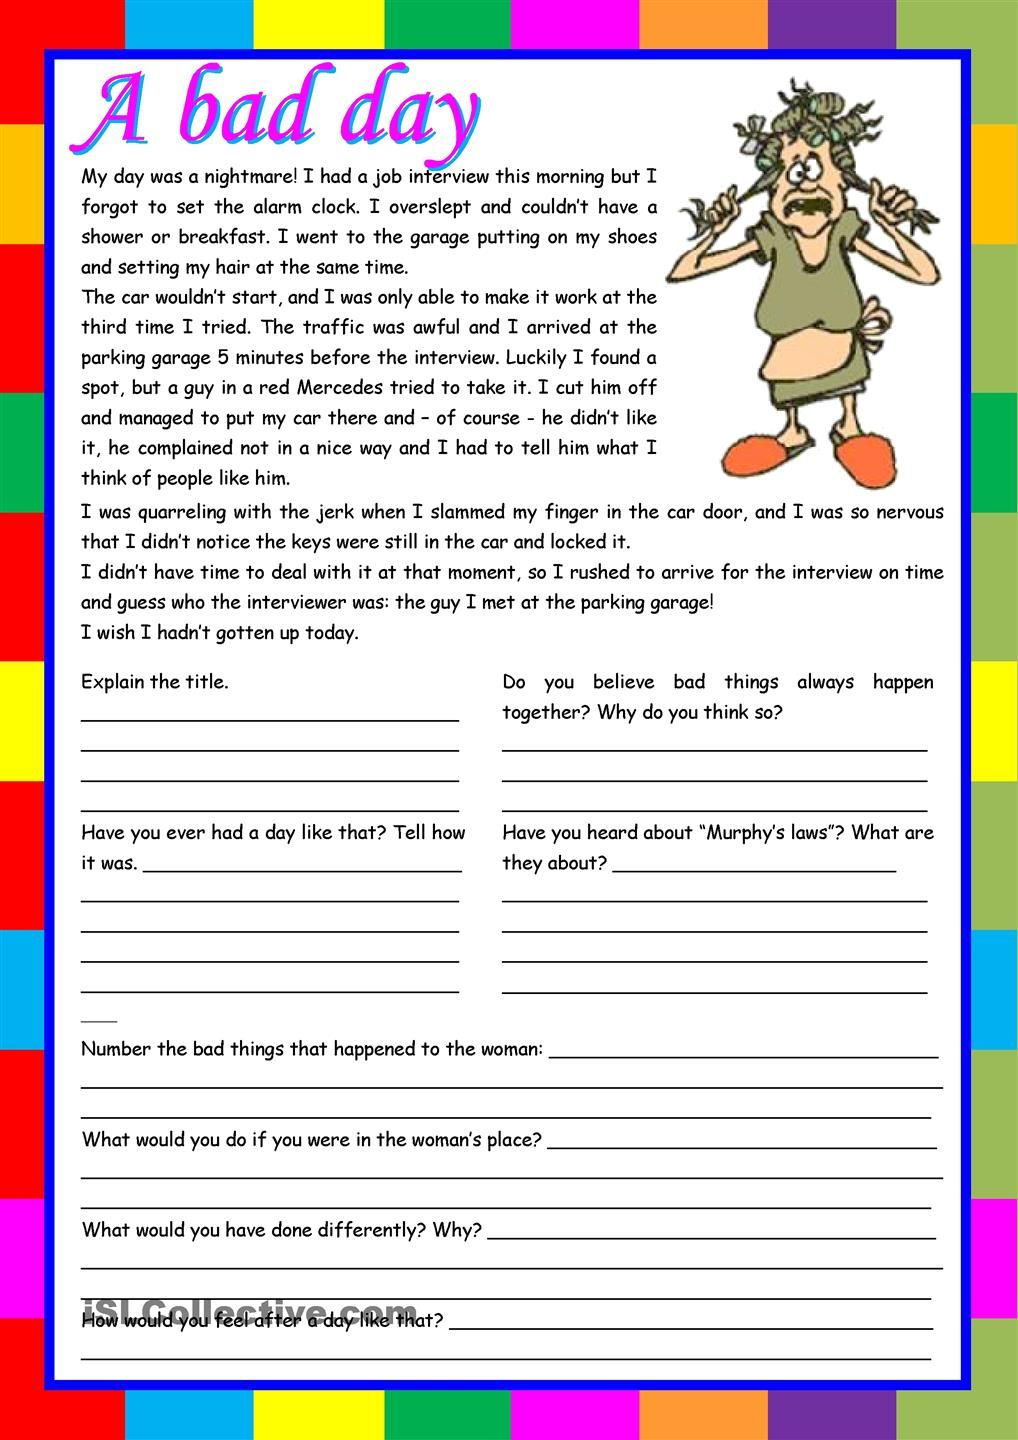 Worksheets English Compherishion a bad day reading comprehension writing conversation 5 tasks